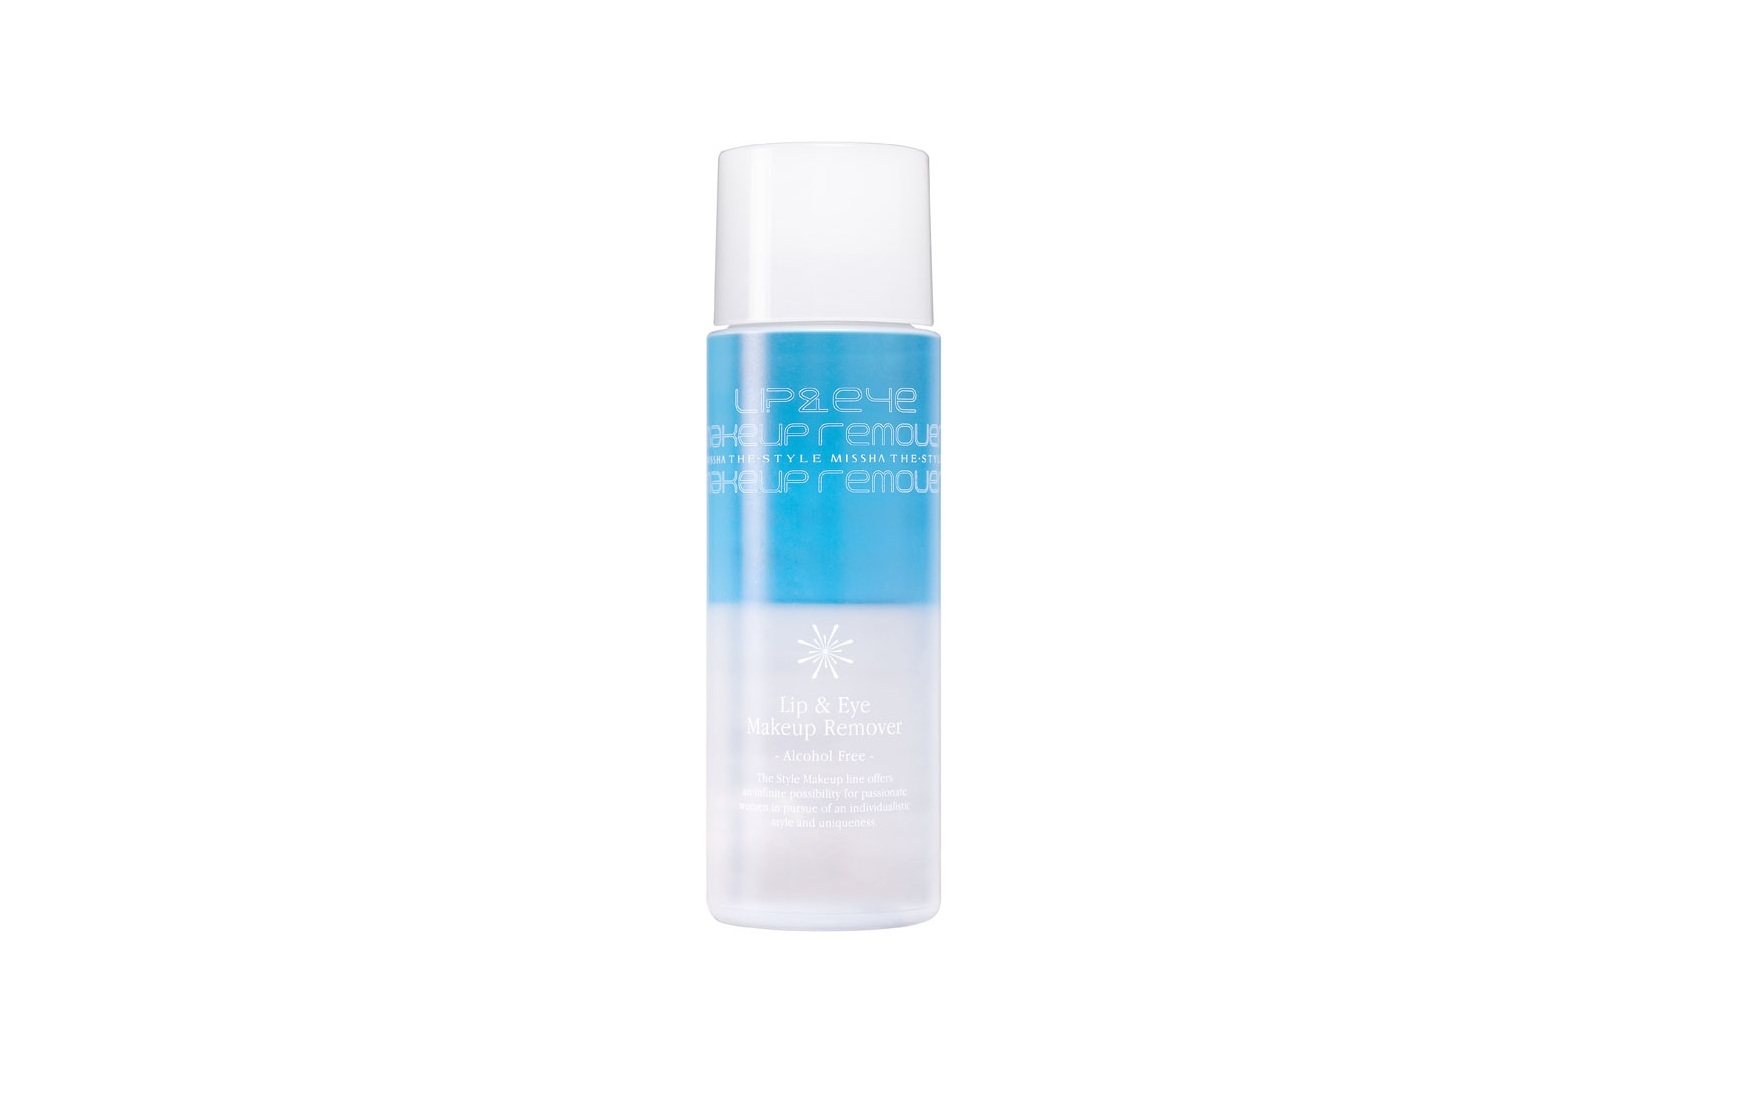 Dwufazowy The Style Lip & Eye Make Up remover